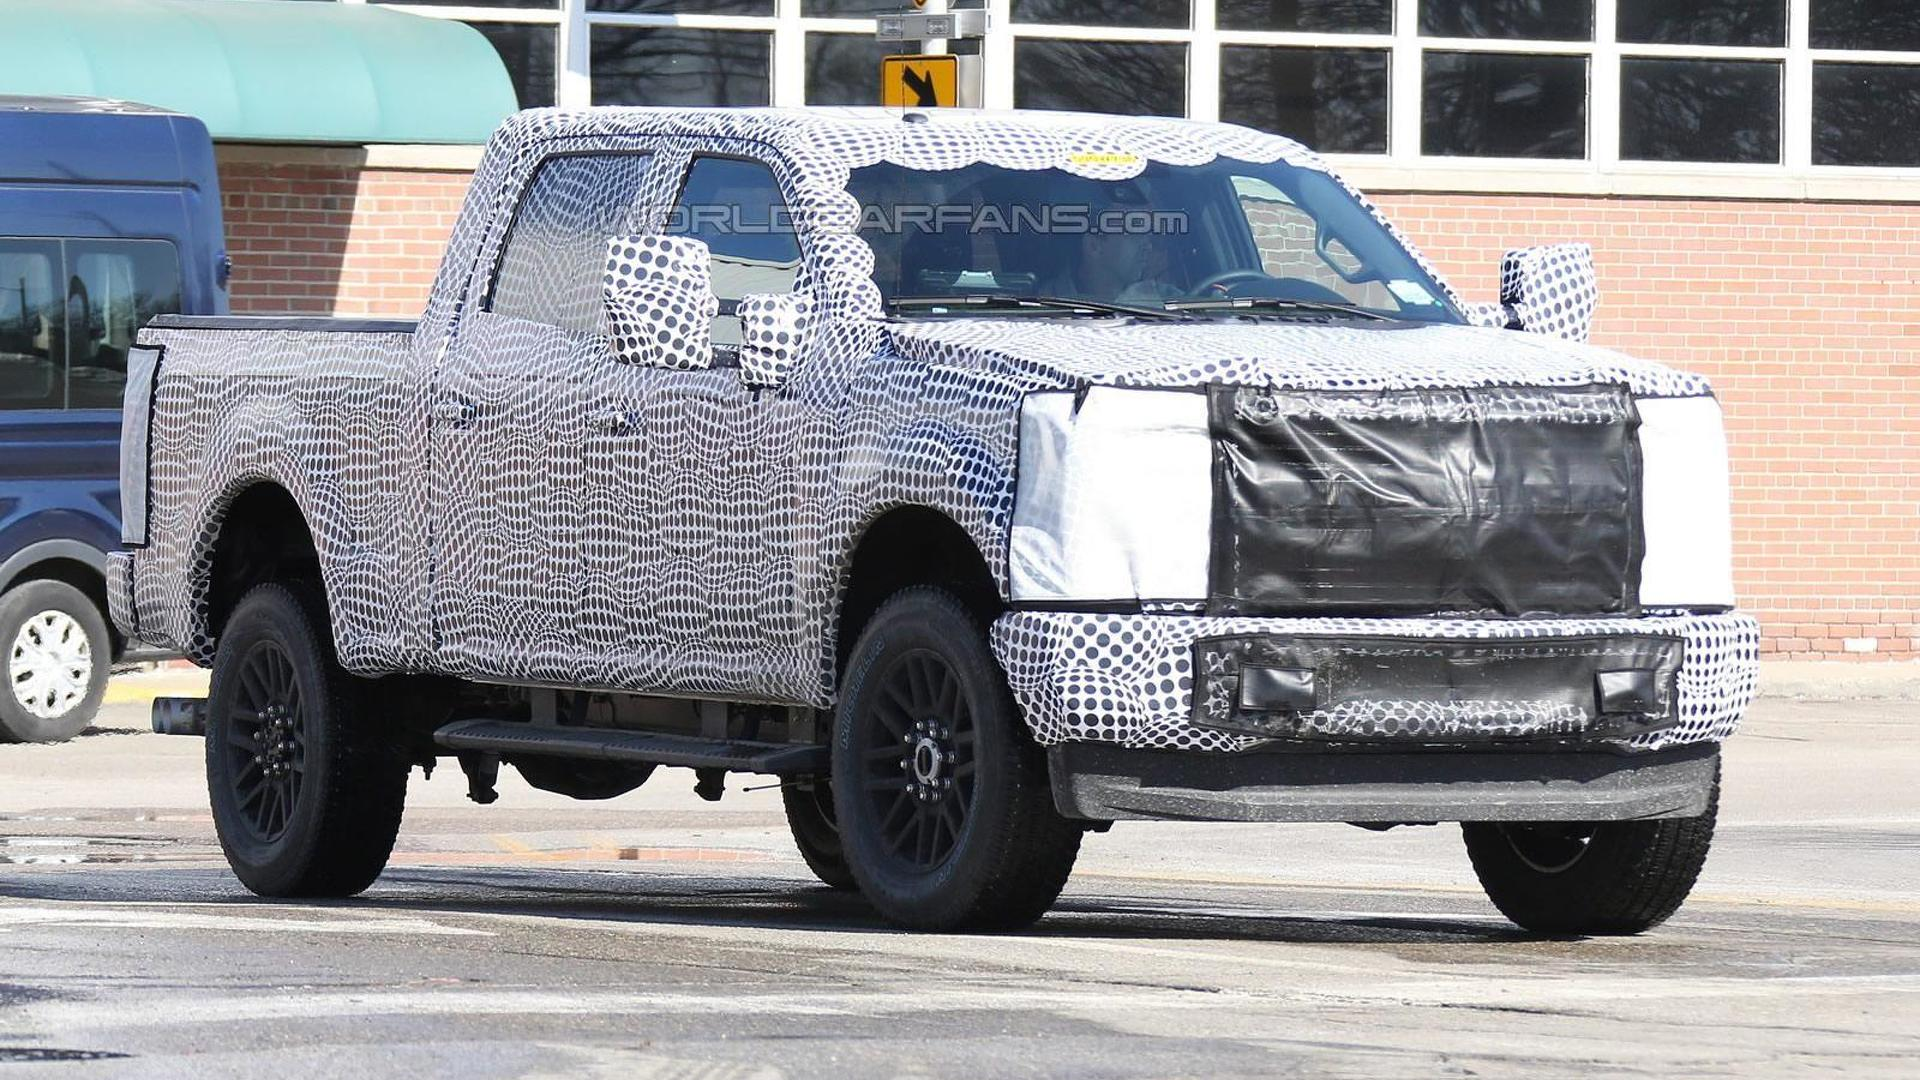 2016 Ford F-250 Super Duty spied with less camouflage